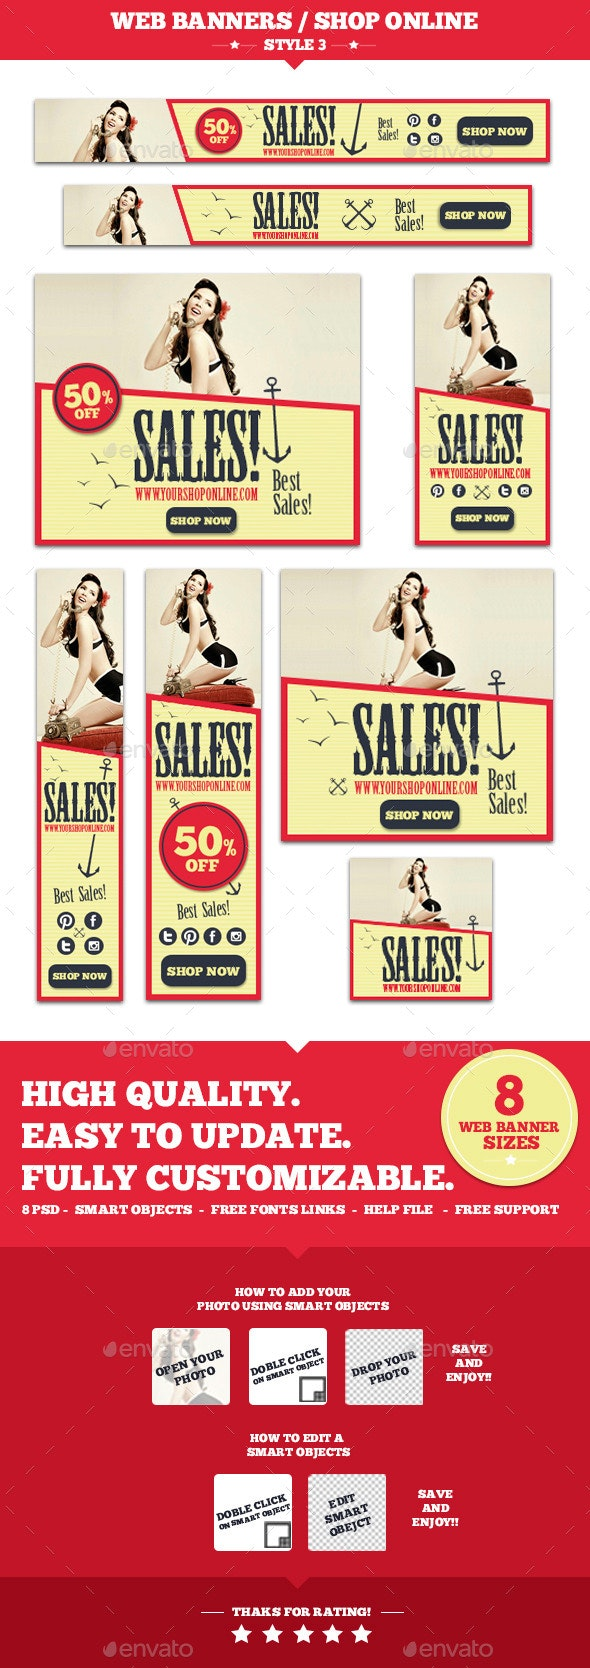 Web Banners Shop Online Style 3 - Banners & Ads Web Elements